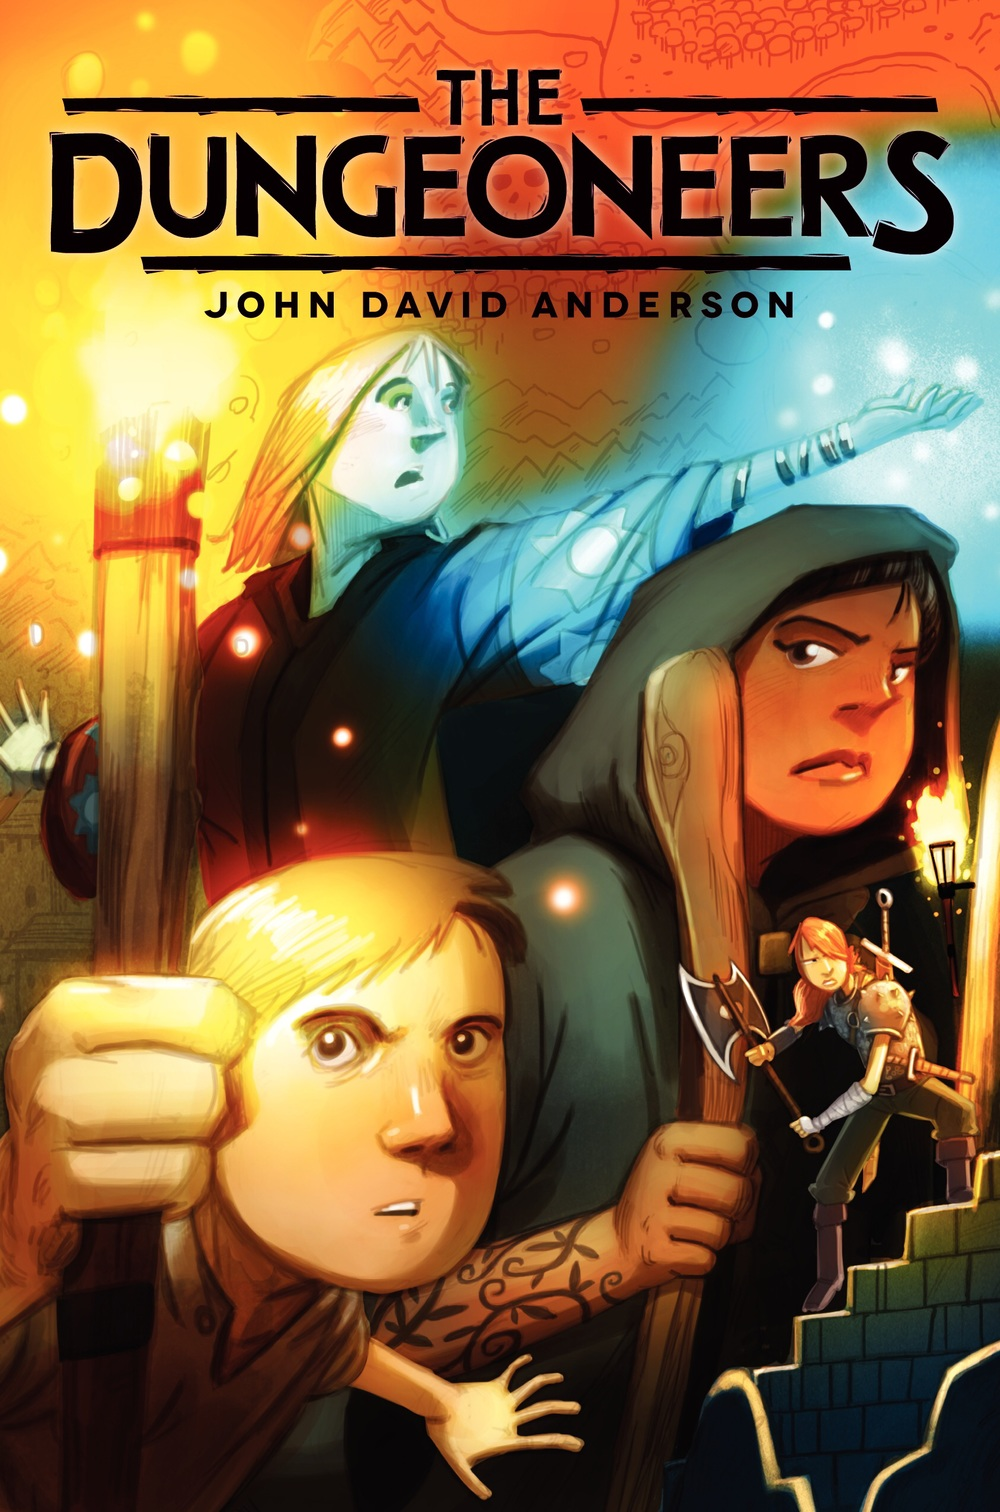 THE DUNGEONEERS by John David Anderson (June 23, 2015 from Walden Pond Press)